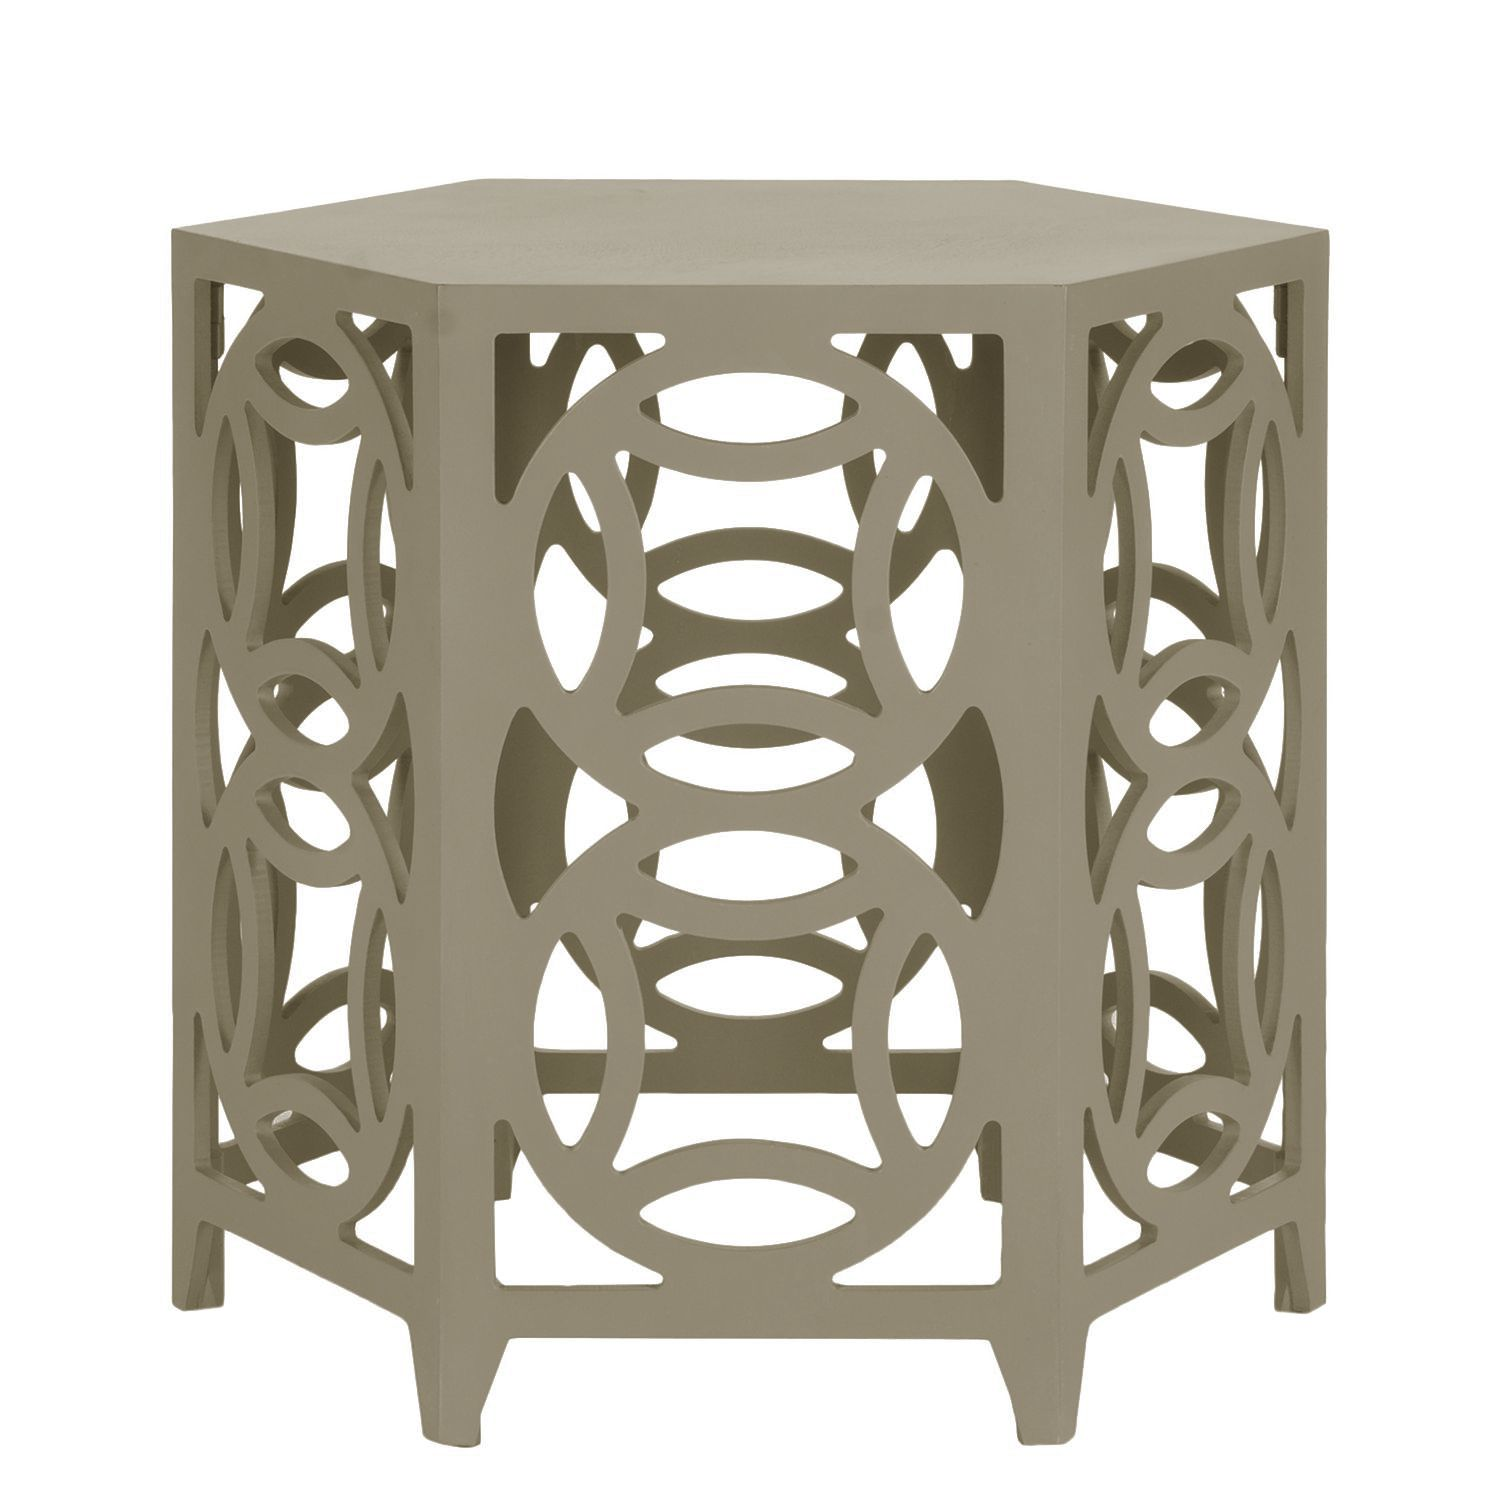 Table d'appoint Lafra - Bayur massif - Taupe, Safavieh